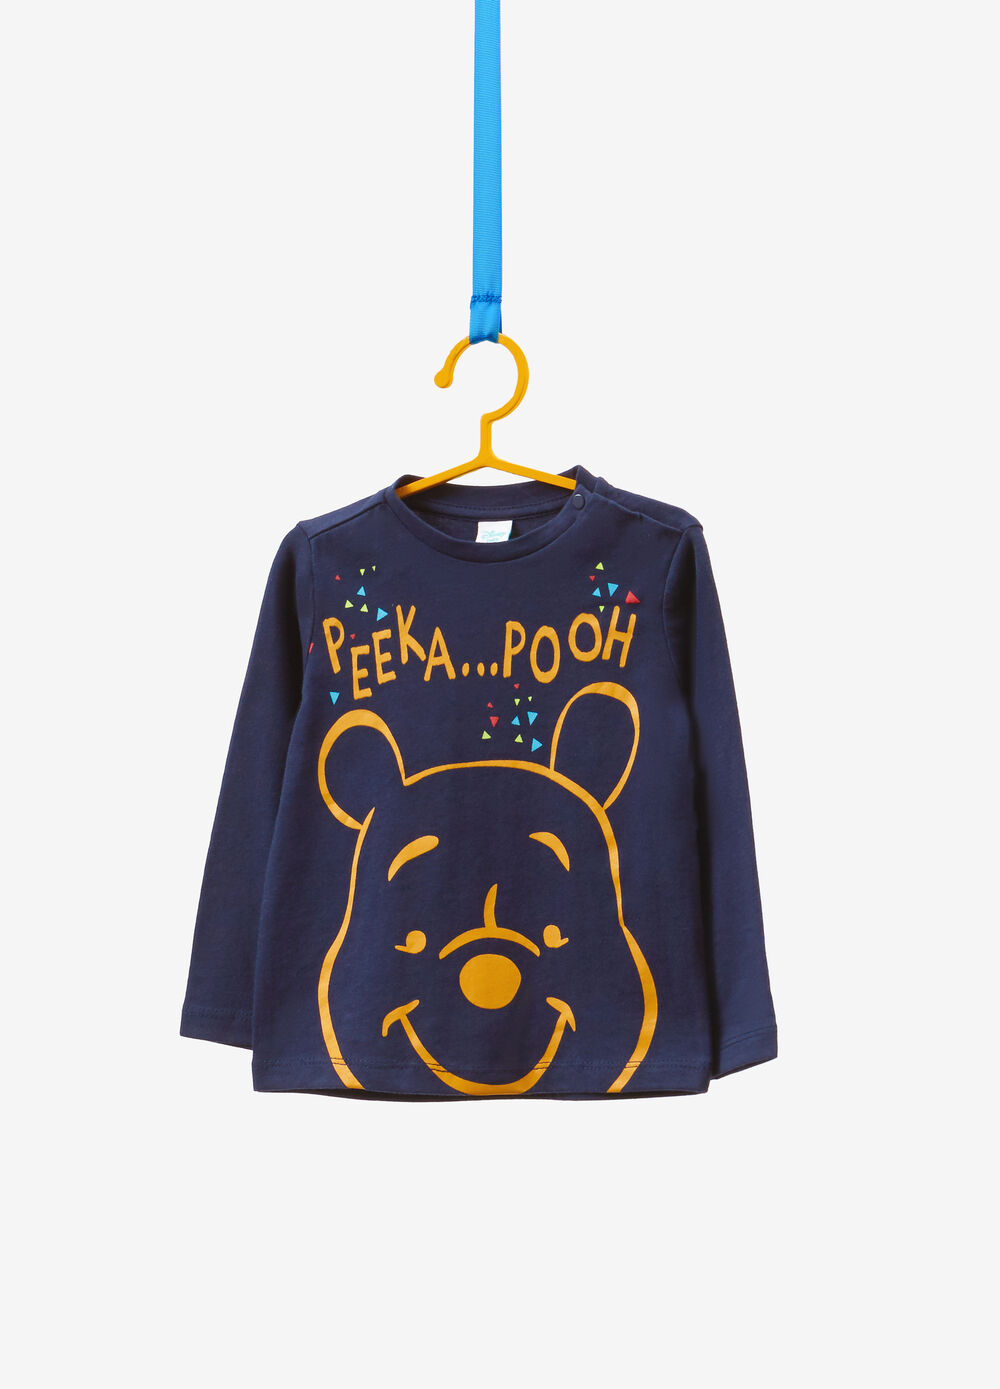 Winnie the Pooh T-shirt in 100% cotton